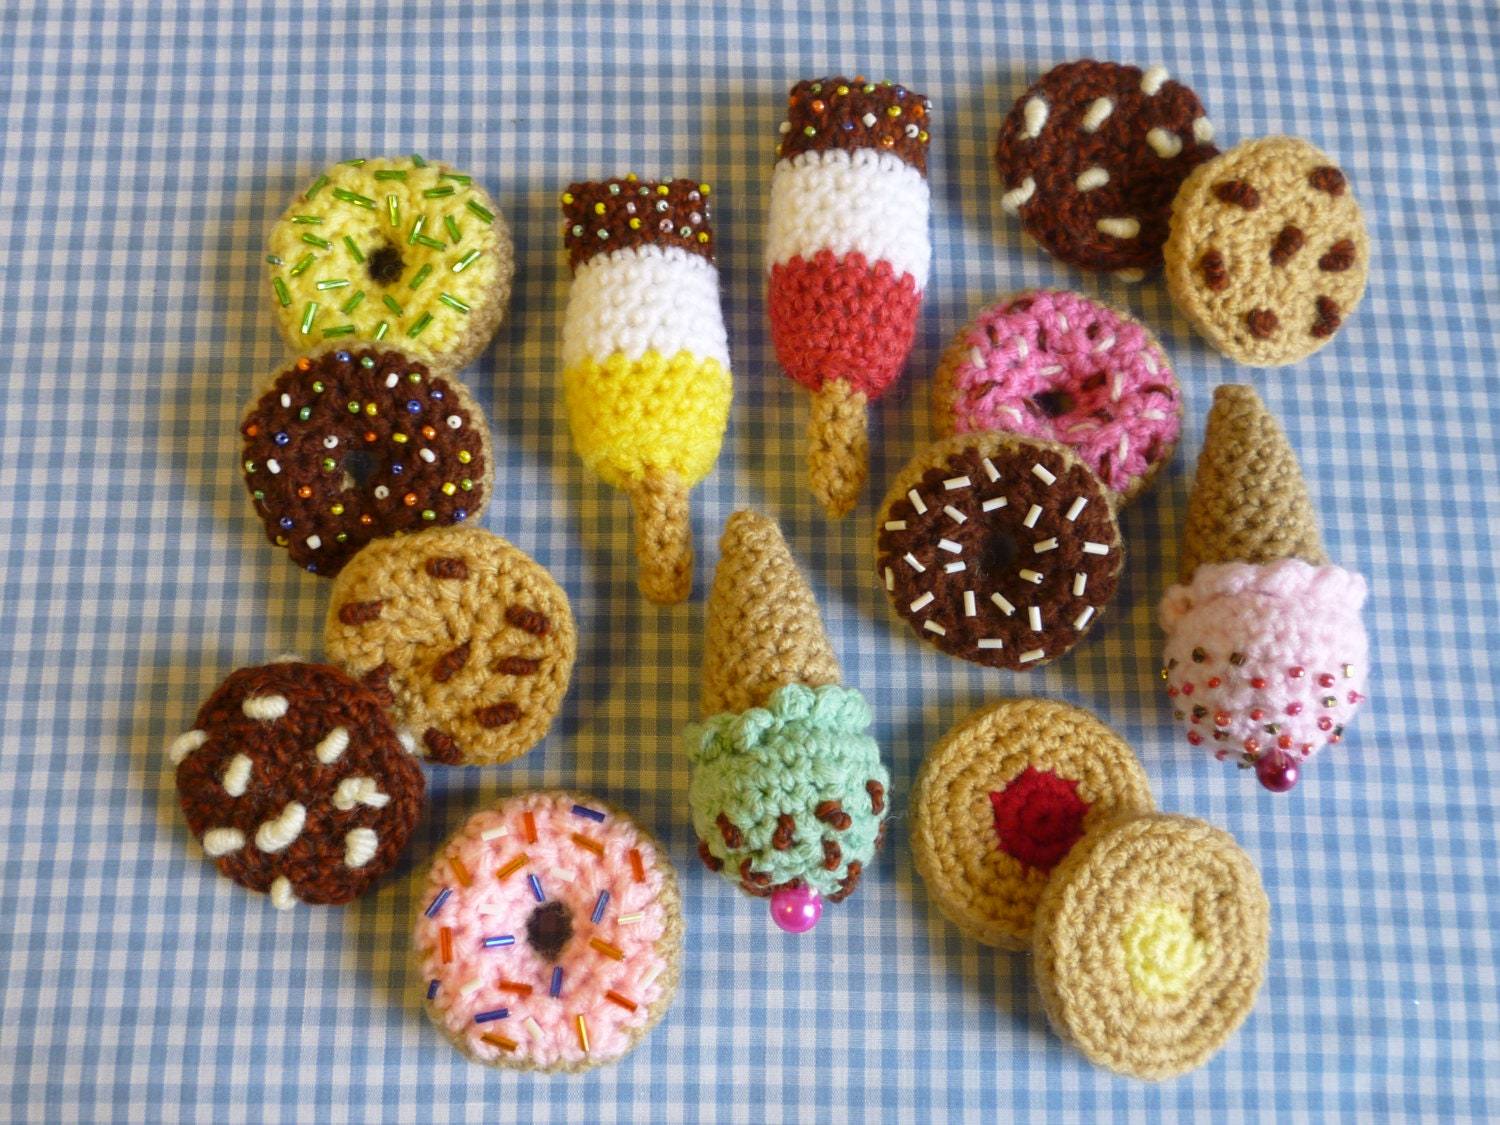 Party Treat Food Amigurumi Crochet Pattern Cookies Donuts